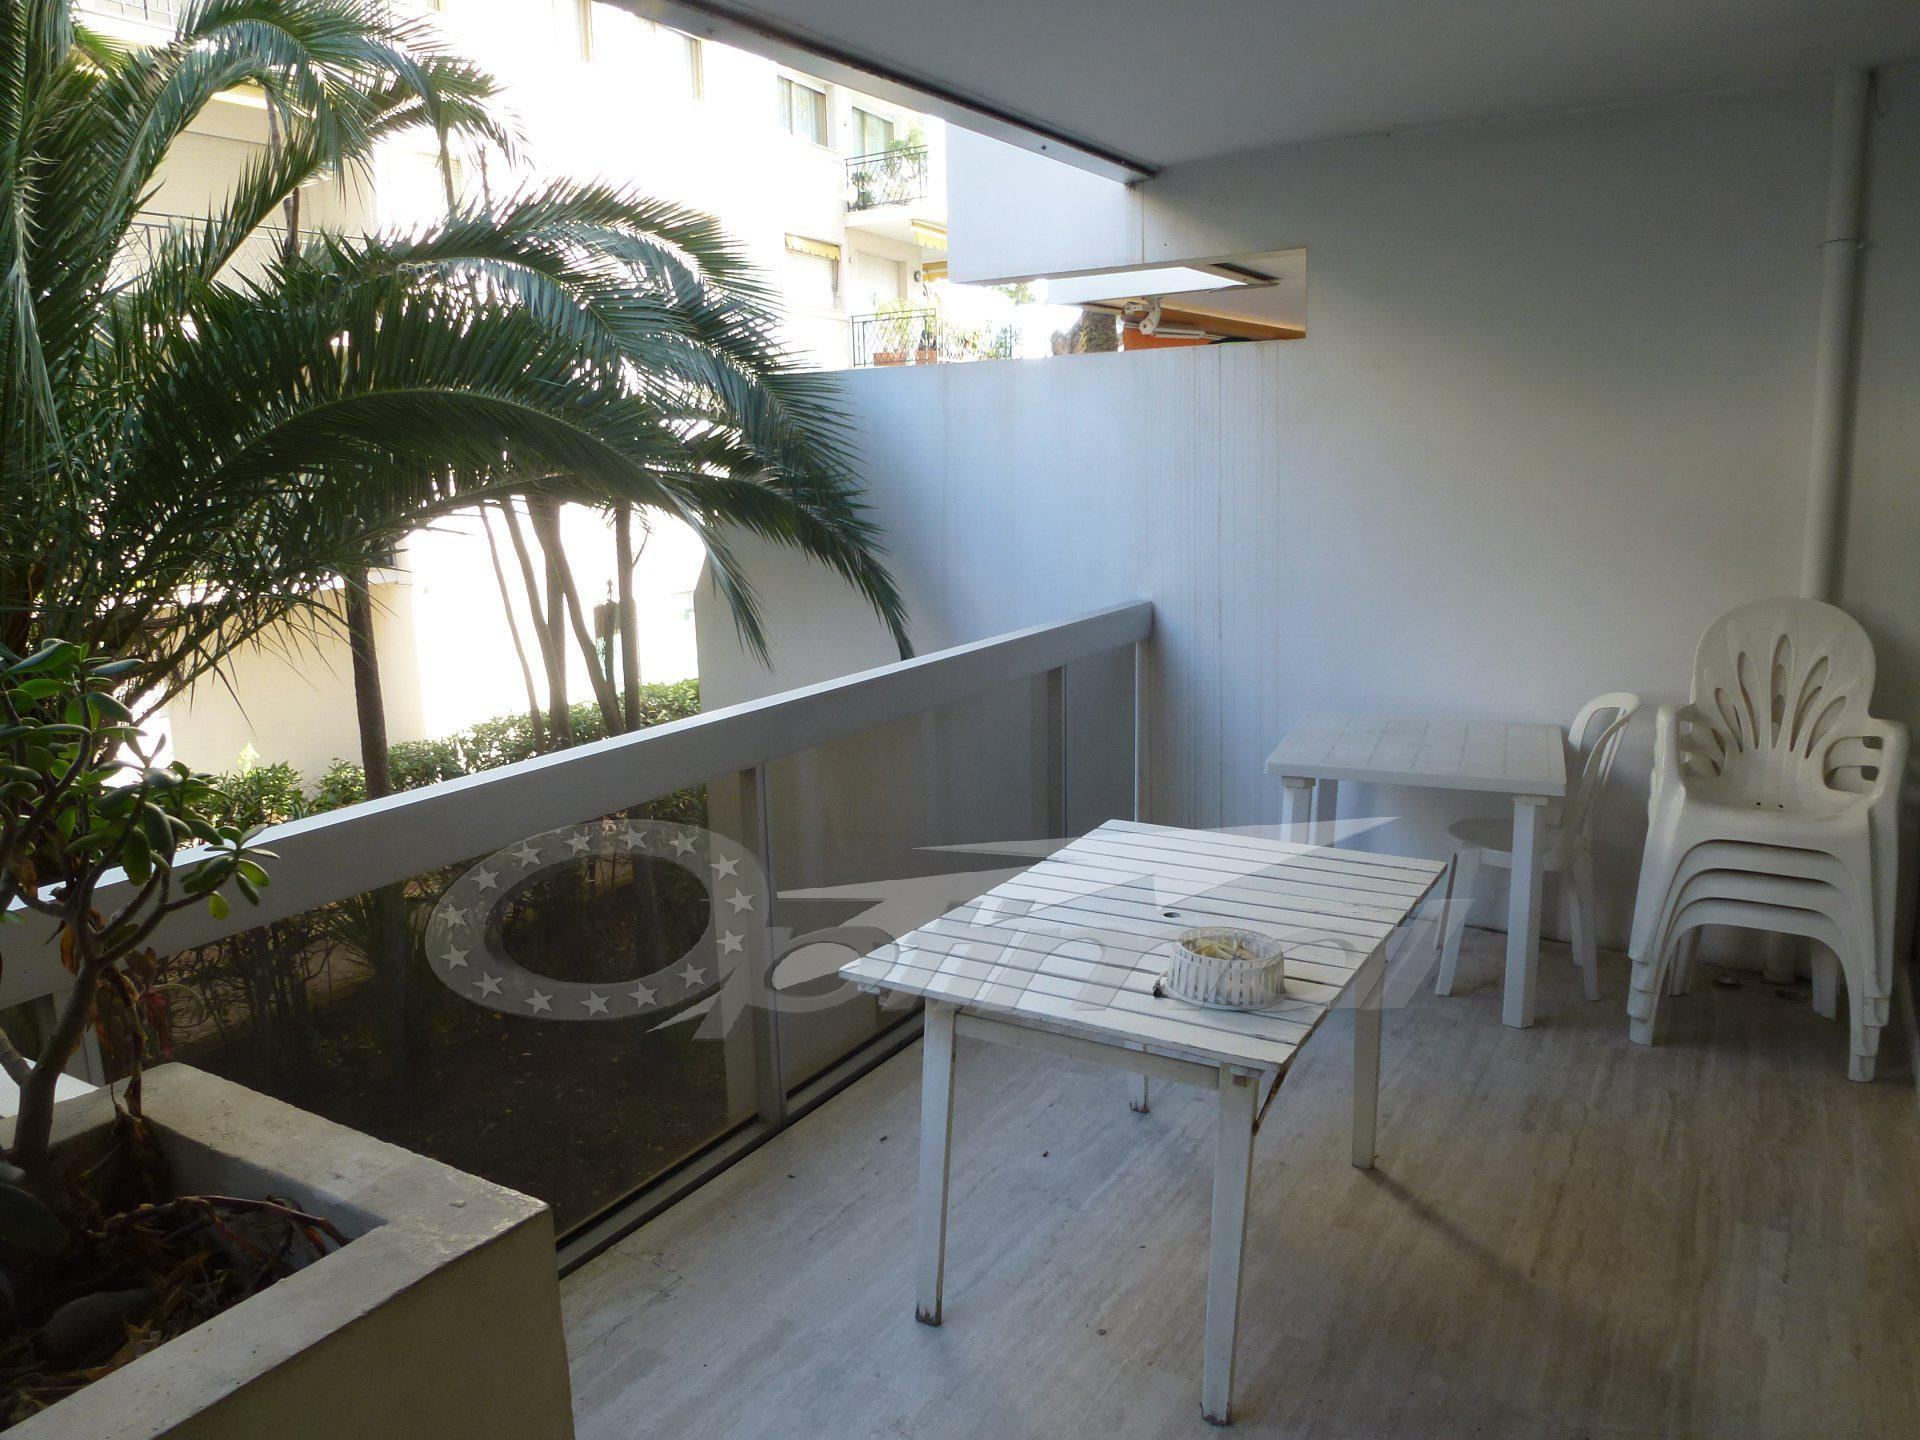 Location Appartement - Menton Garavan